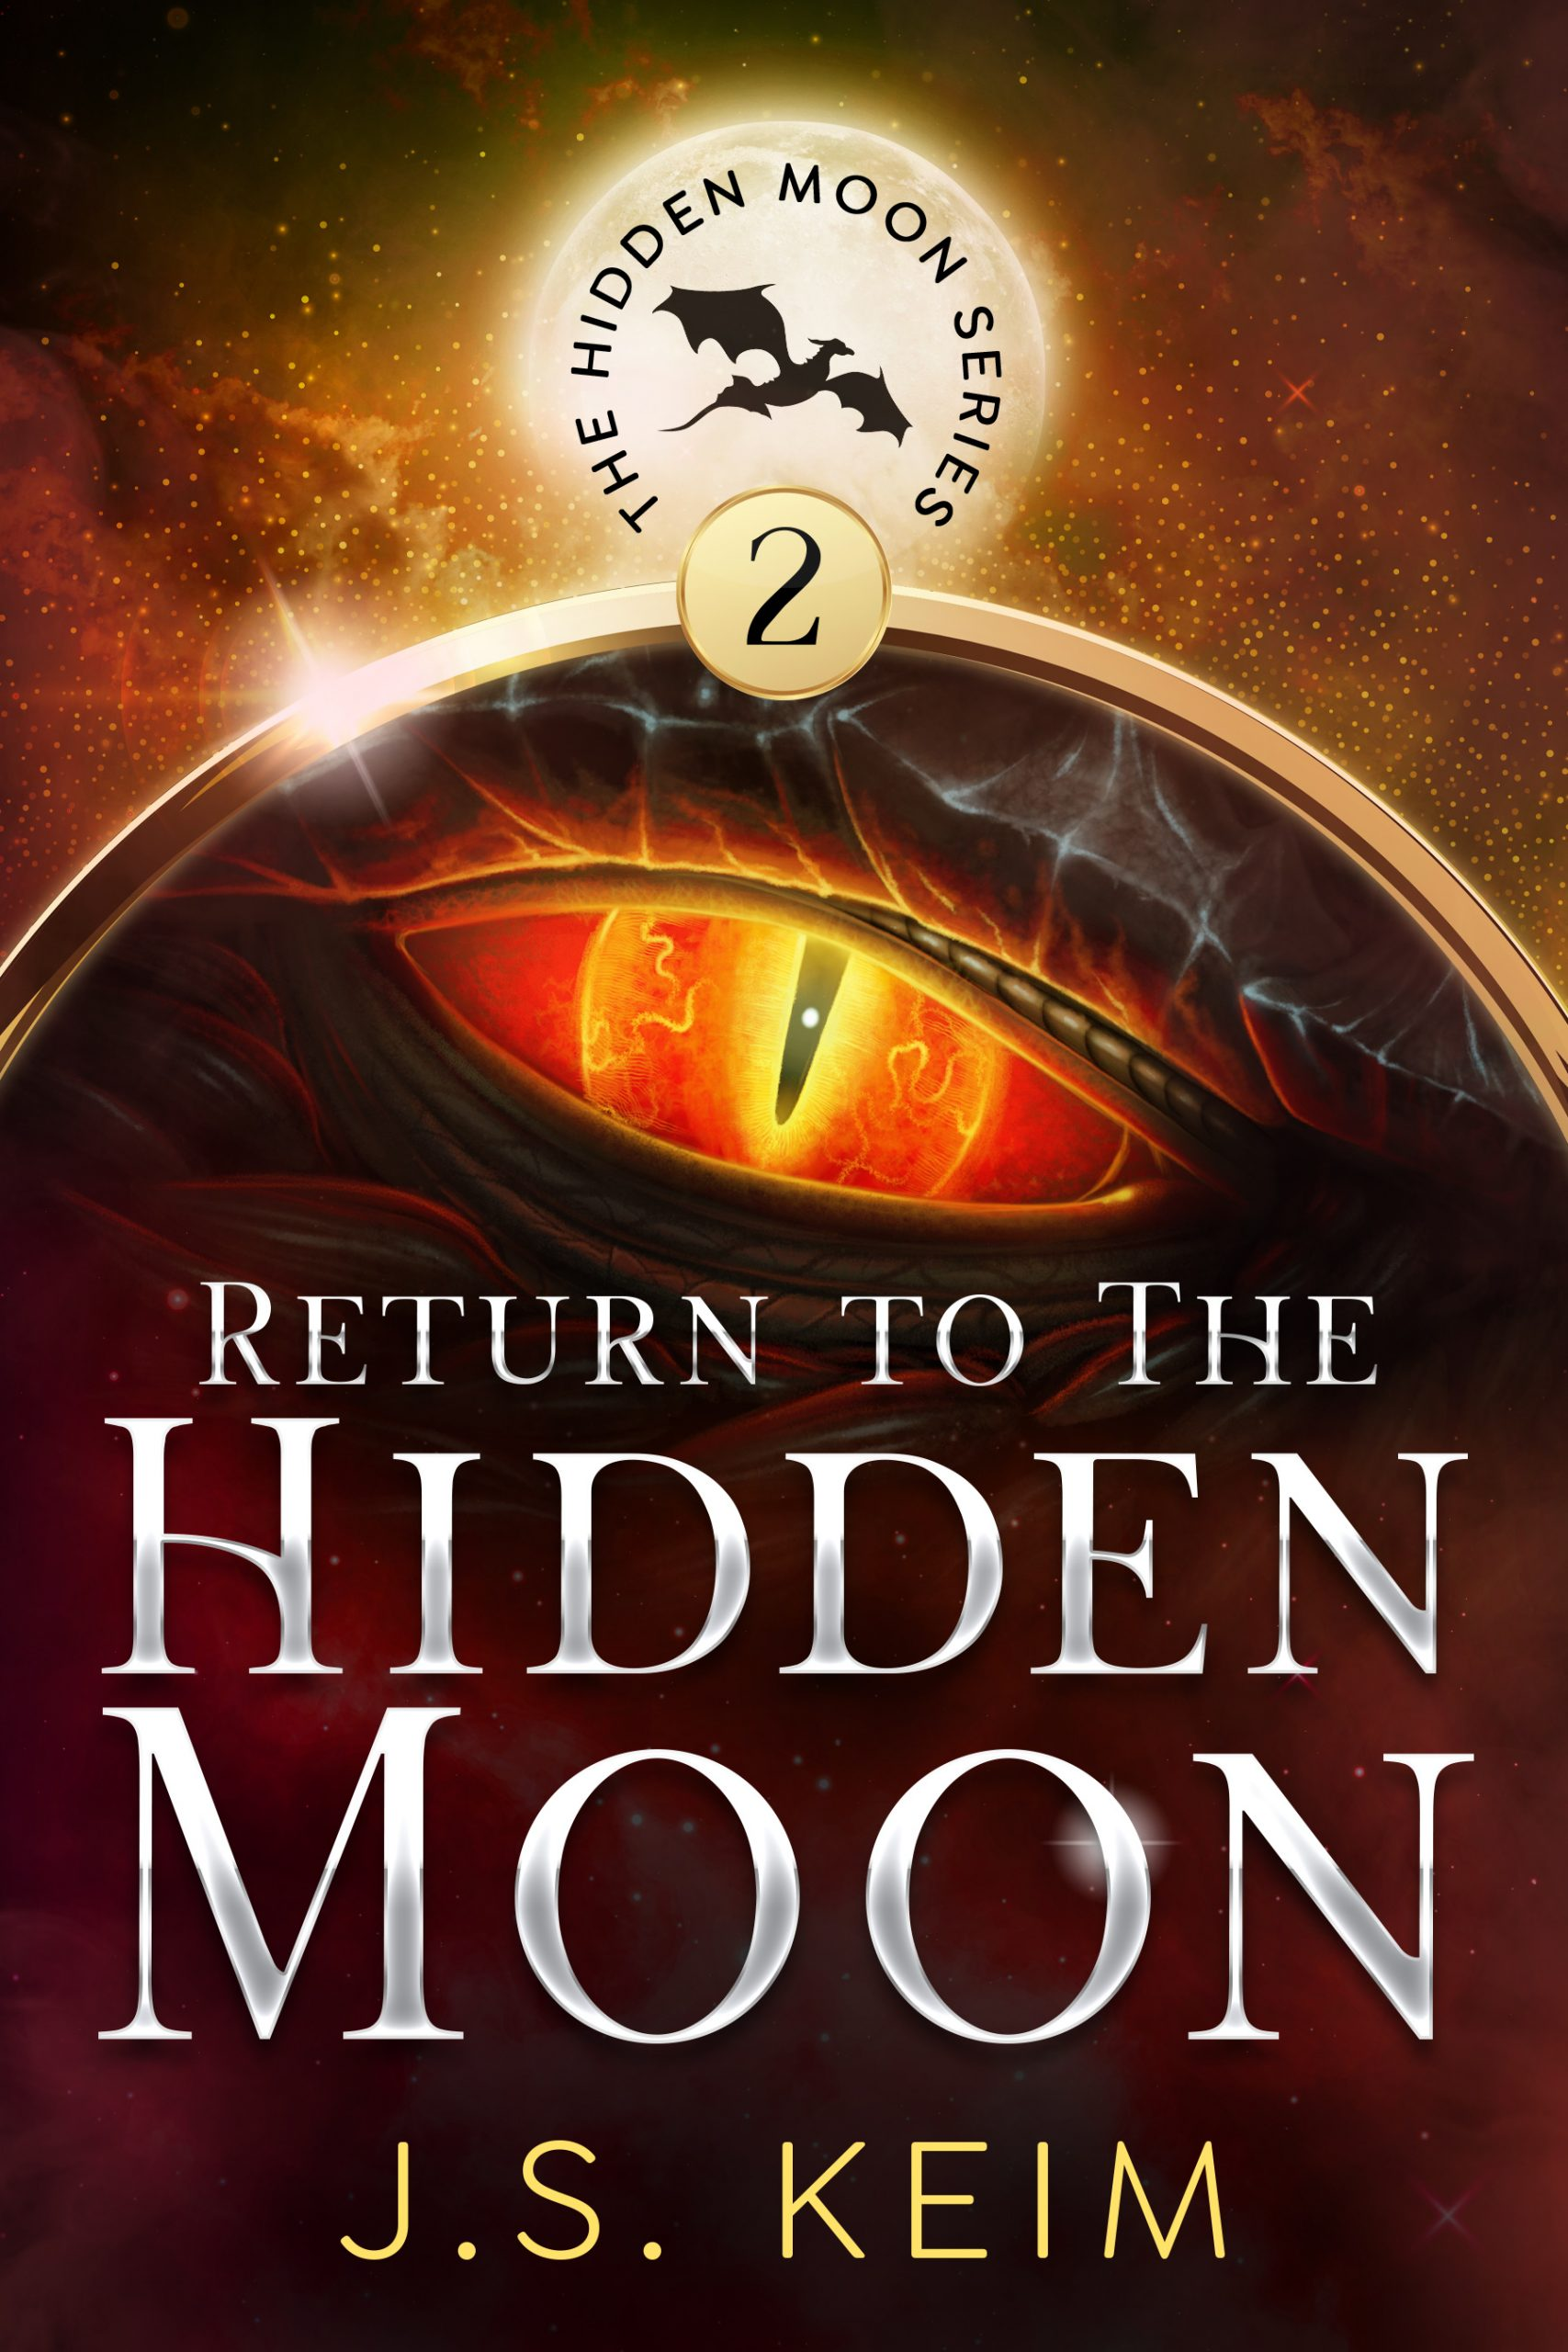 ReturntoTheHiddenMoon_eBook